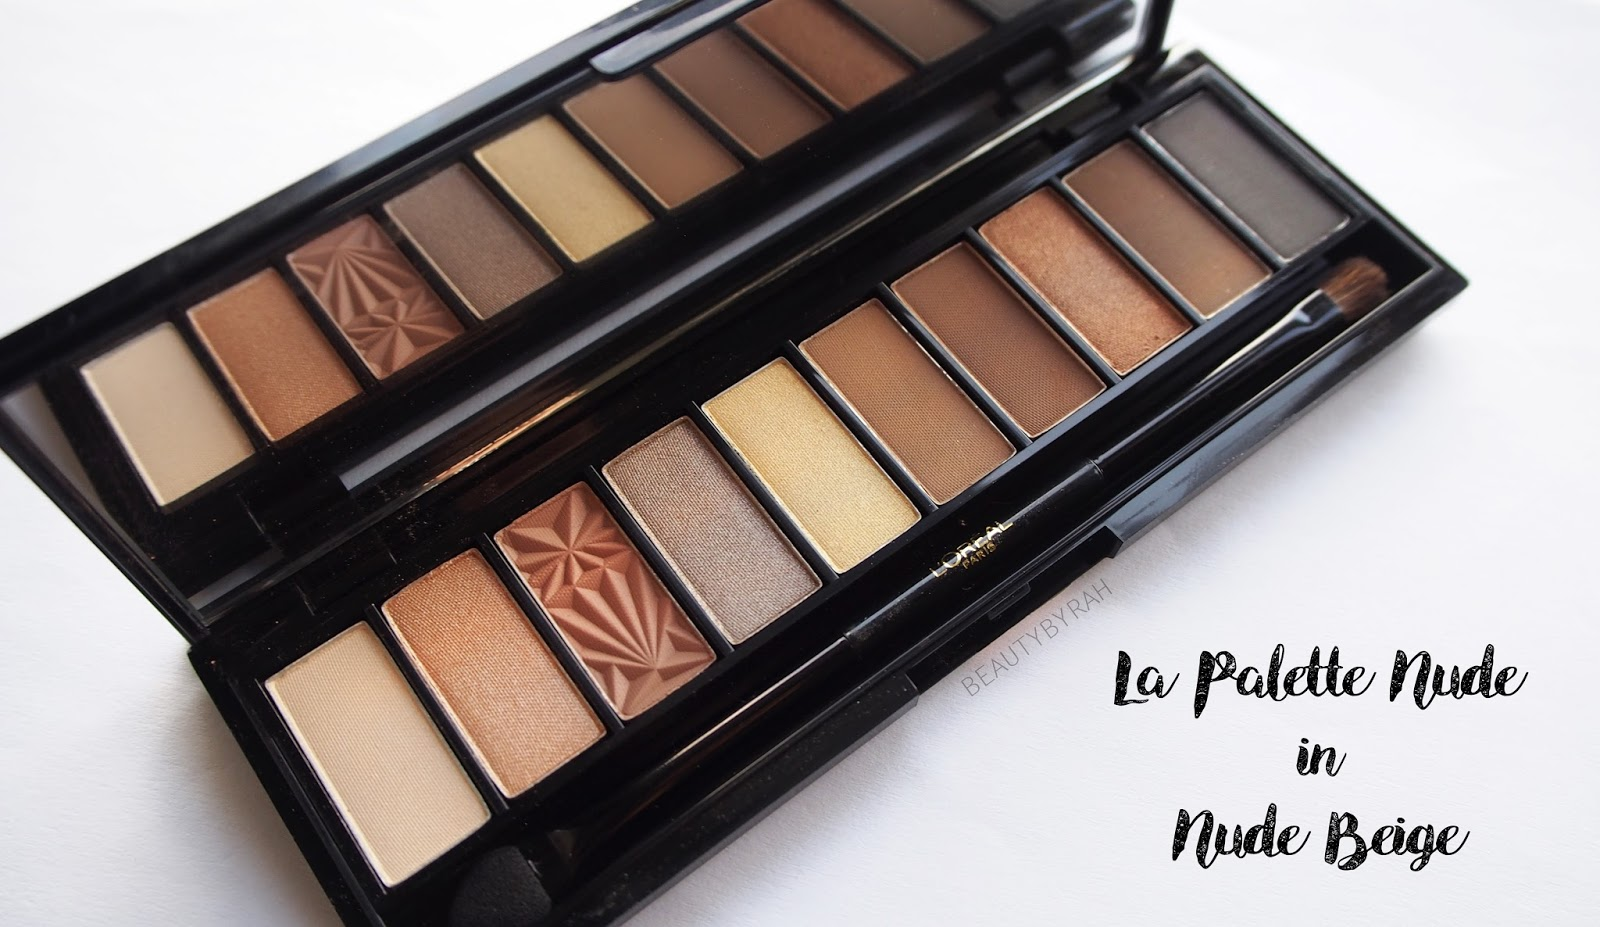 Loreal La palette nude singapore nude beige review